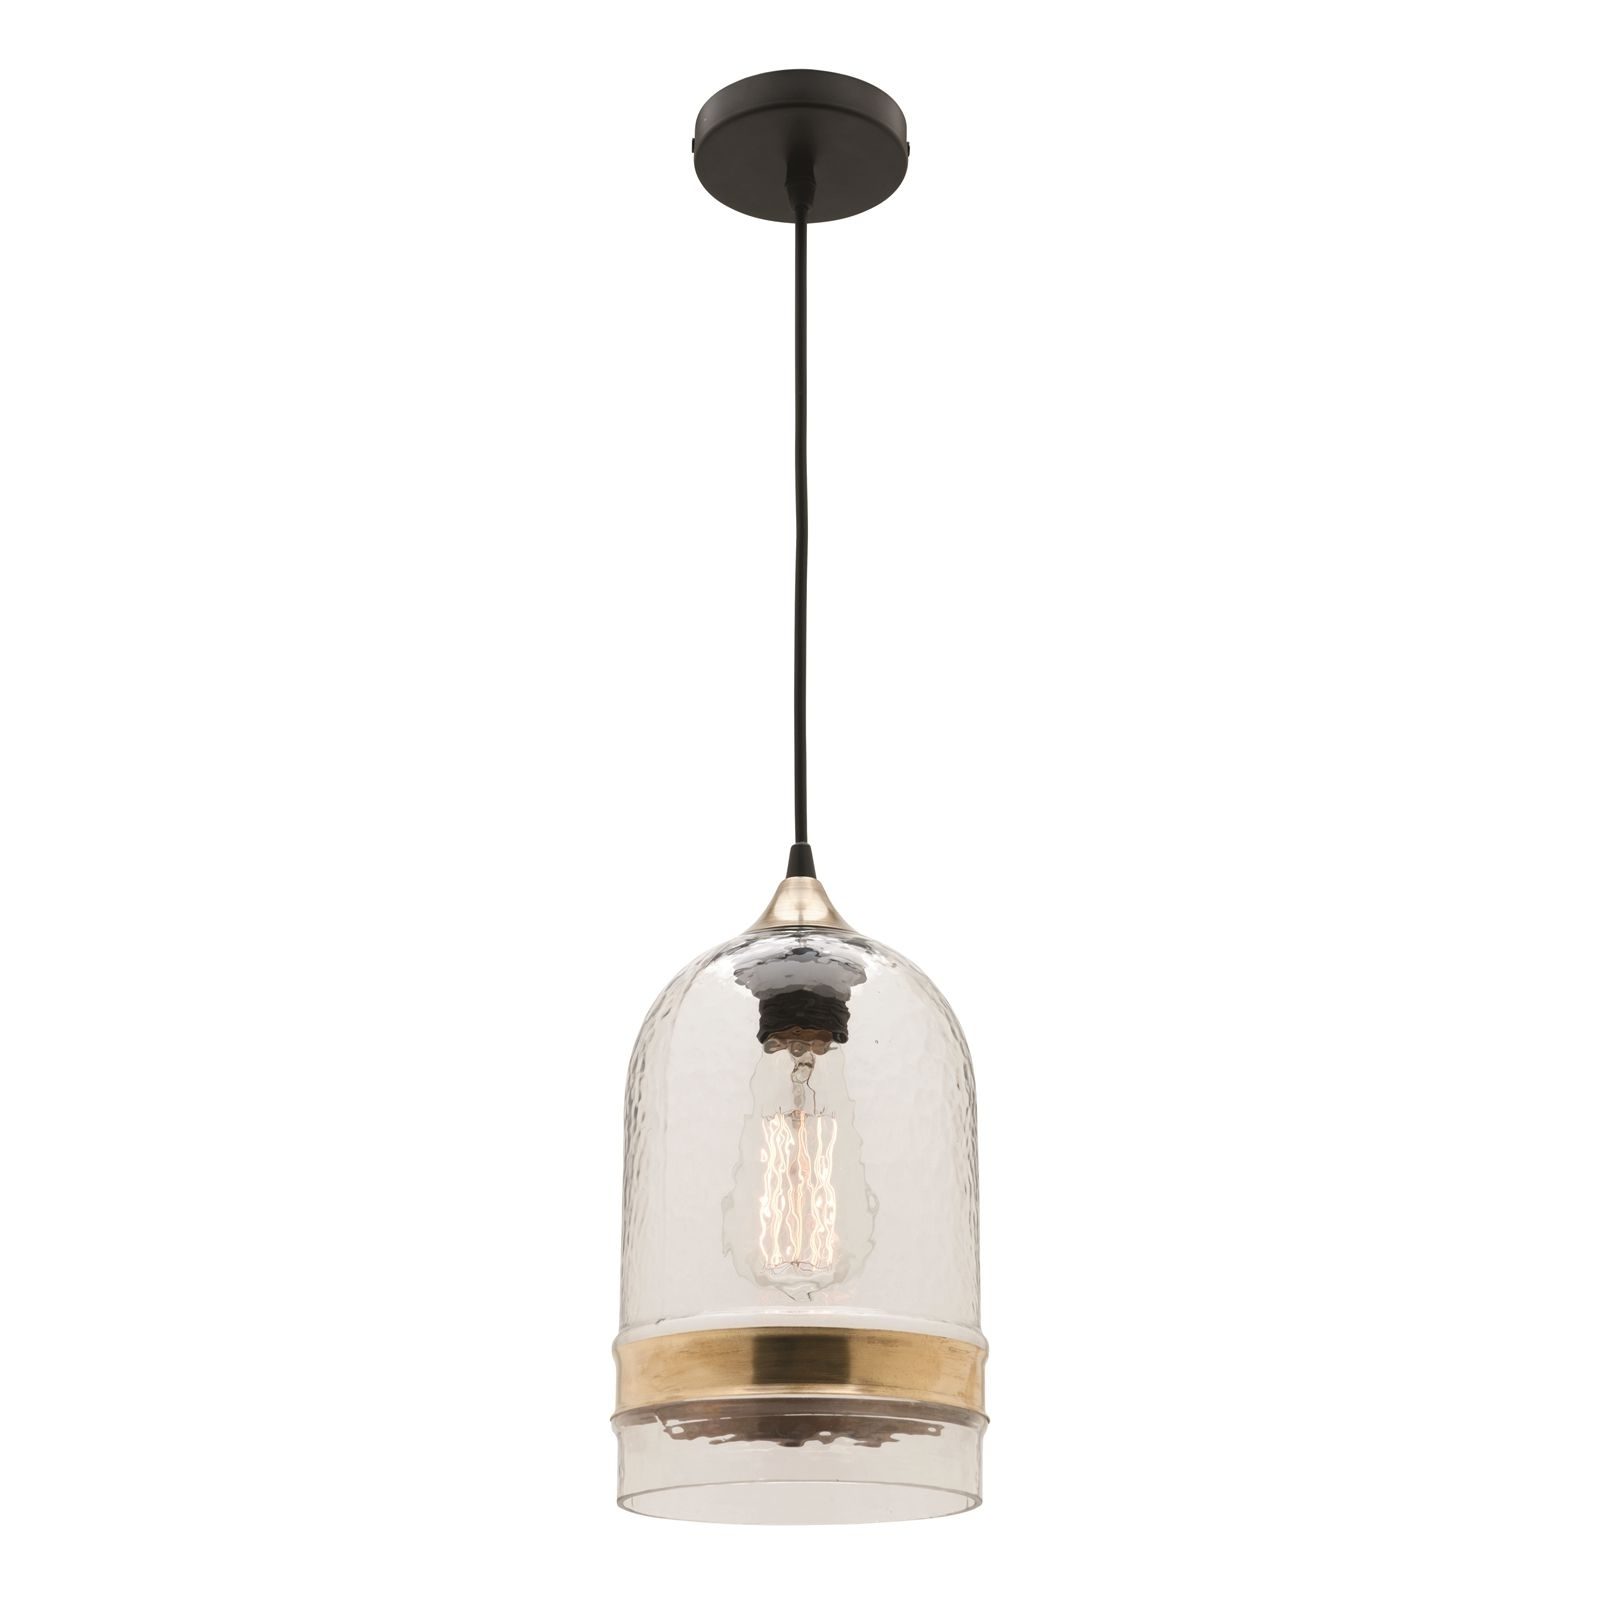 Outdoor Hanging Lights At Bunnings Throughout Most Up To Date Find Mercator 240v Glass And Brass Haven Pendant Light At Bunnings (View 10 of 20)